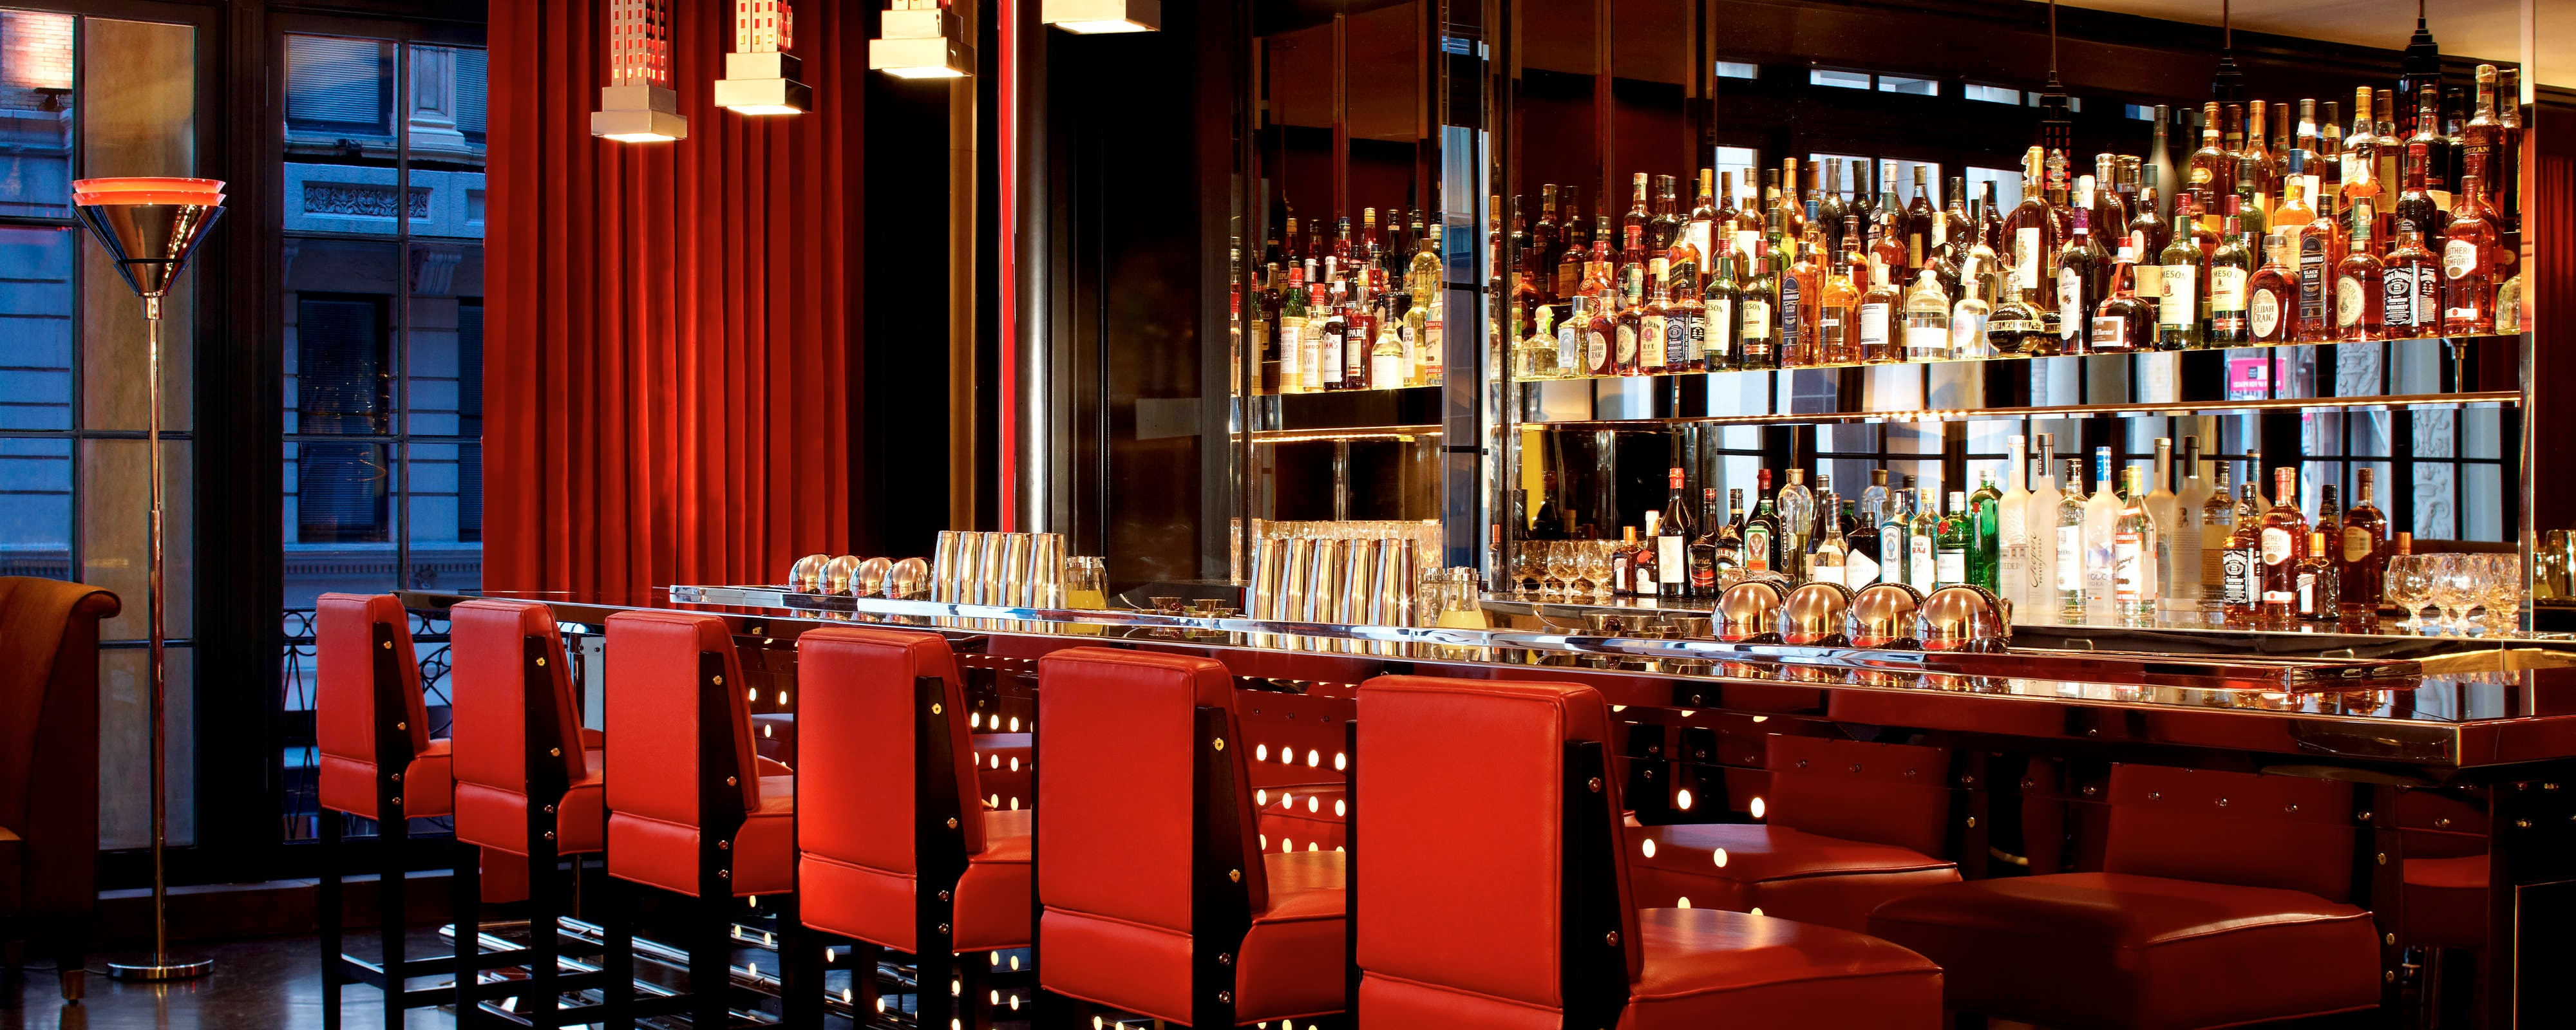 The Lambs Club - Bar